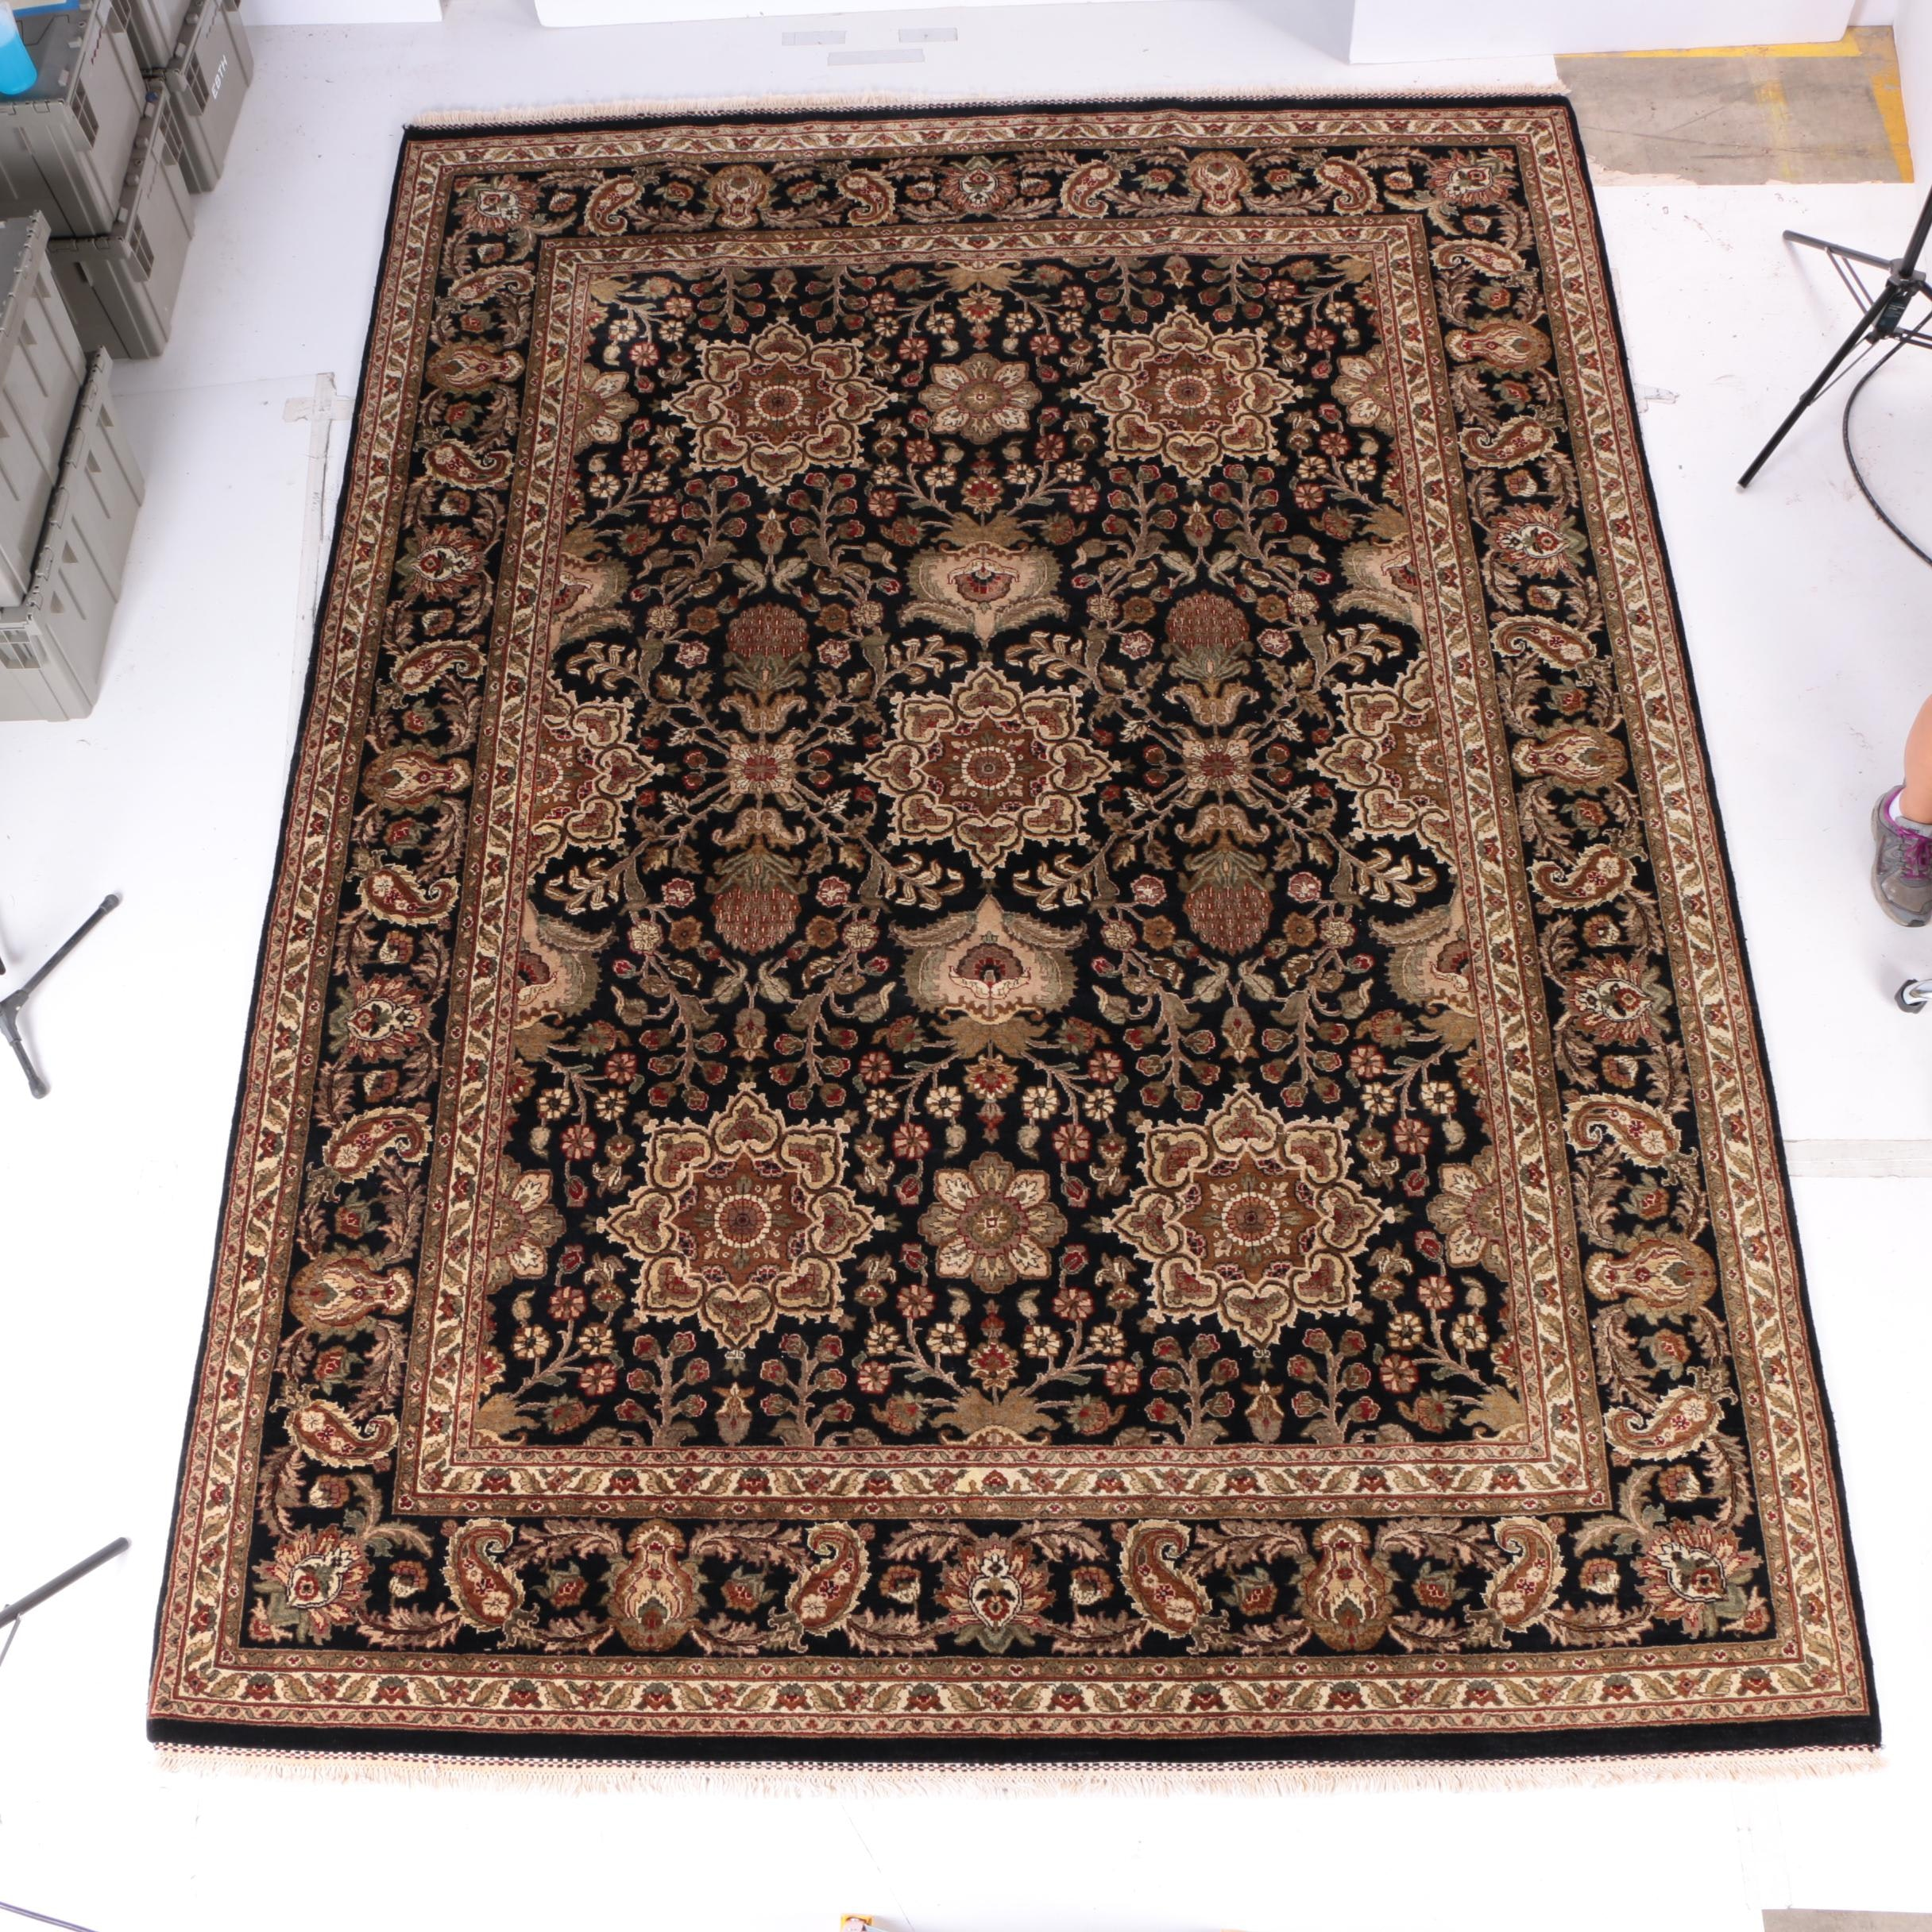 Hand-Knotted Agra Style Wool Area Rug